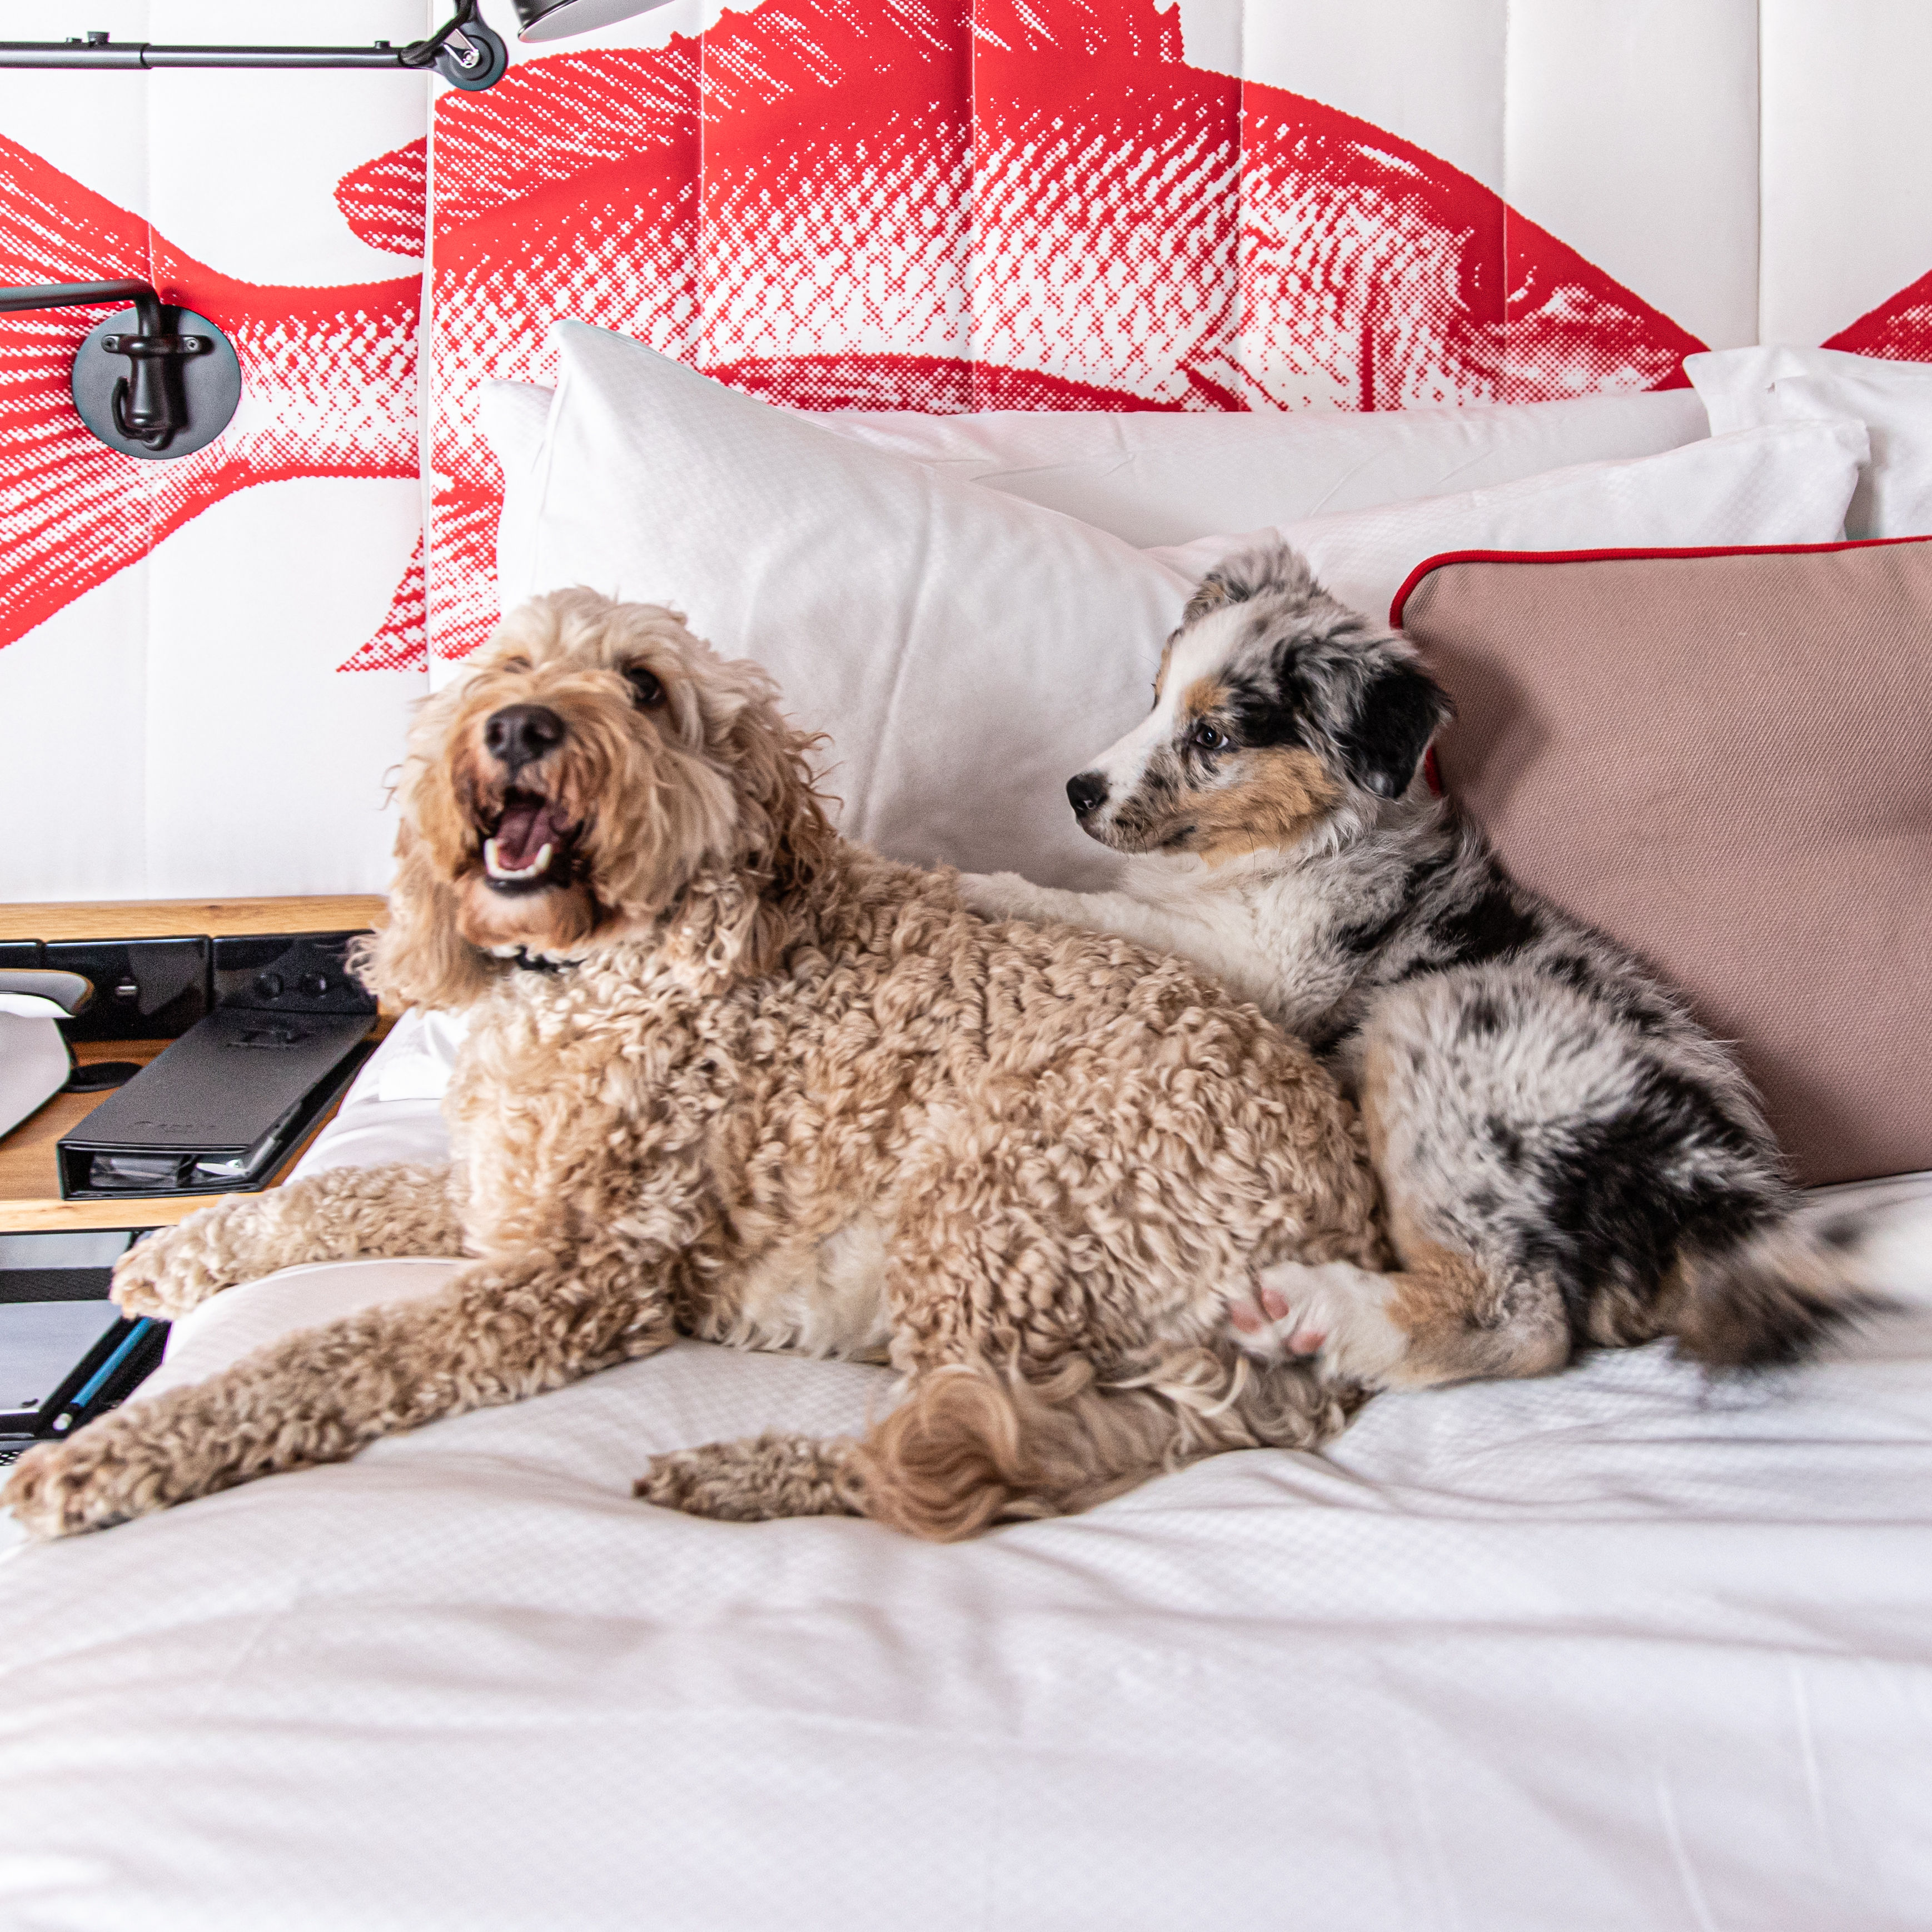 Hotel Wrap: Ovolo's Dog-friendly Rooms, Ihg's New Brand, Pan Pacific's Expansion + More photo